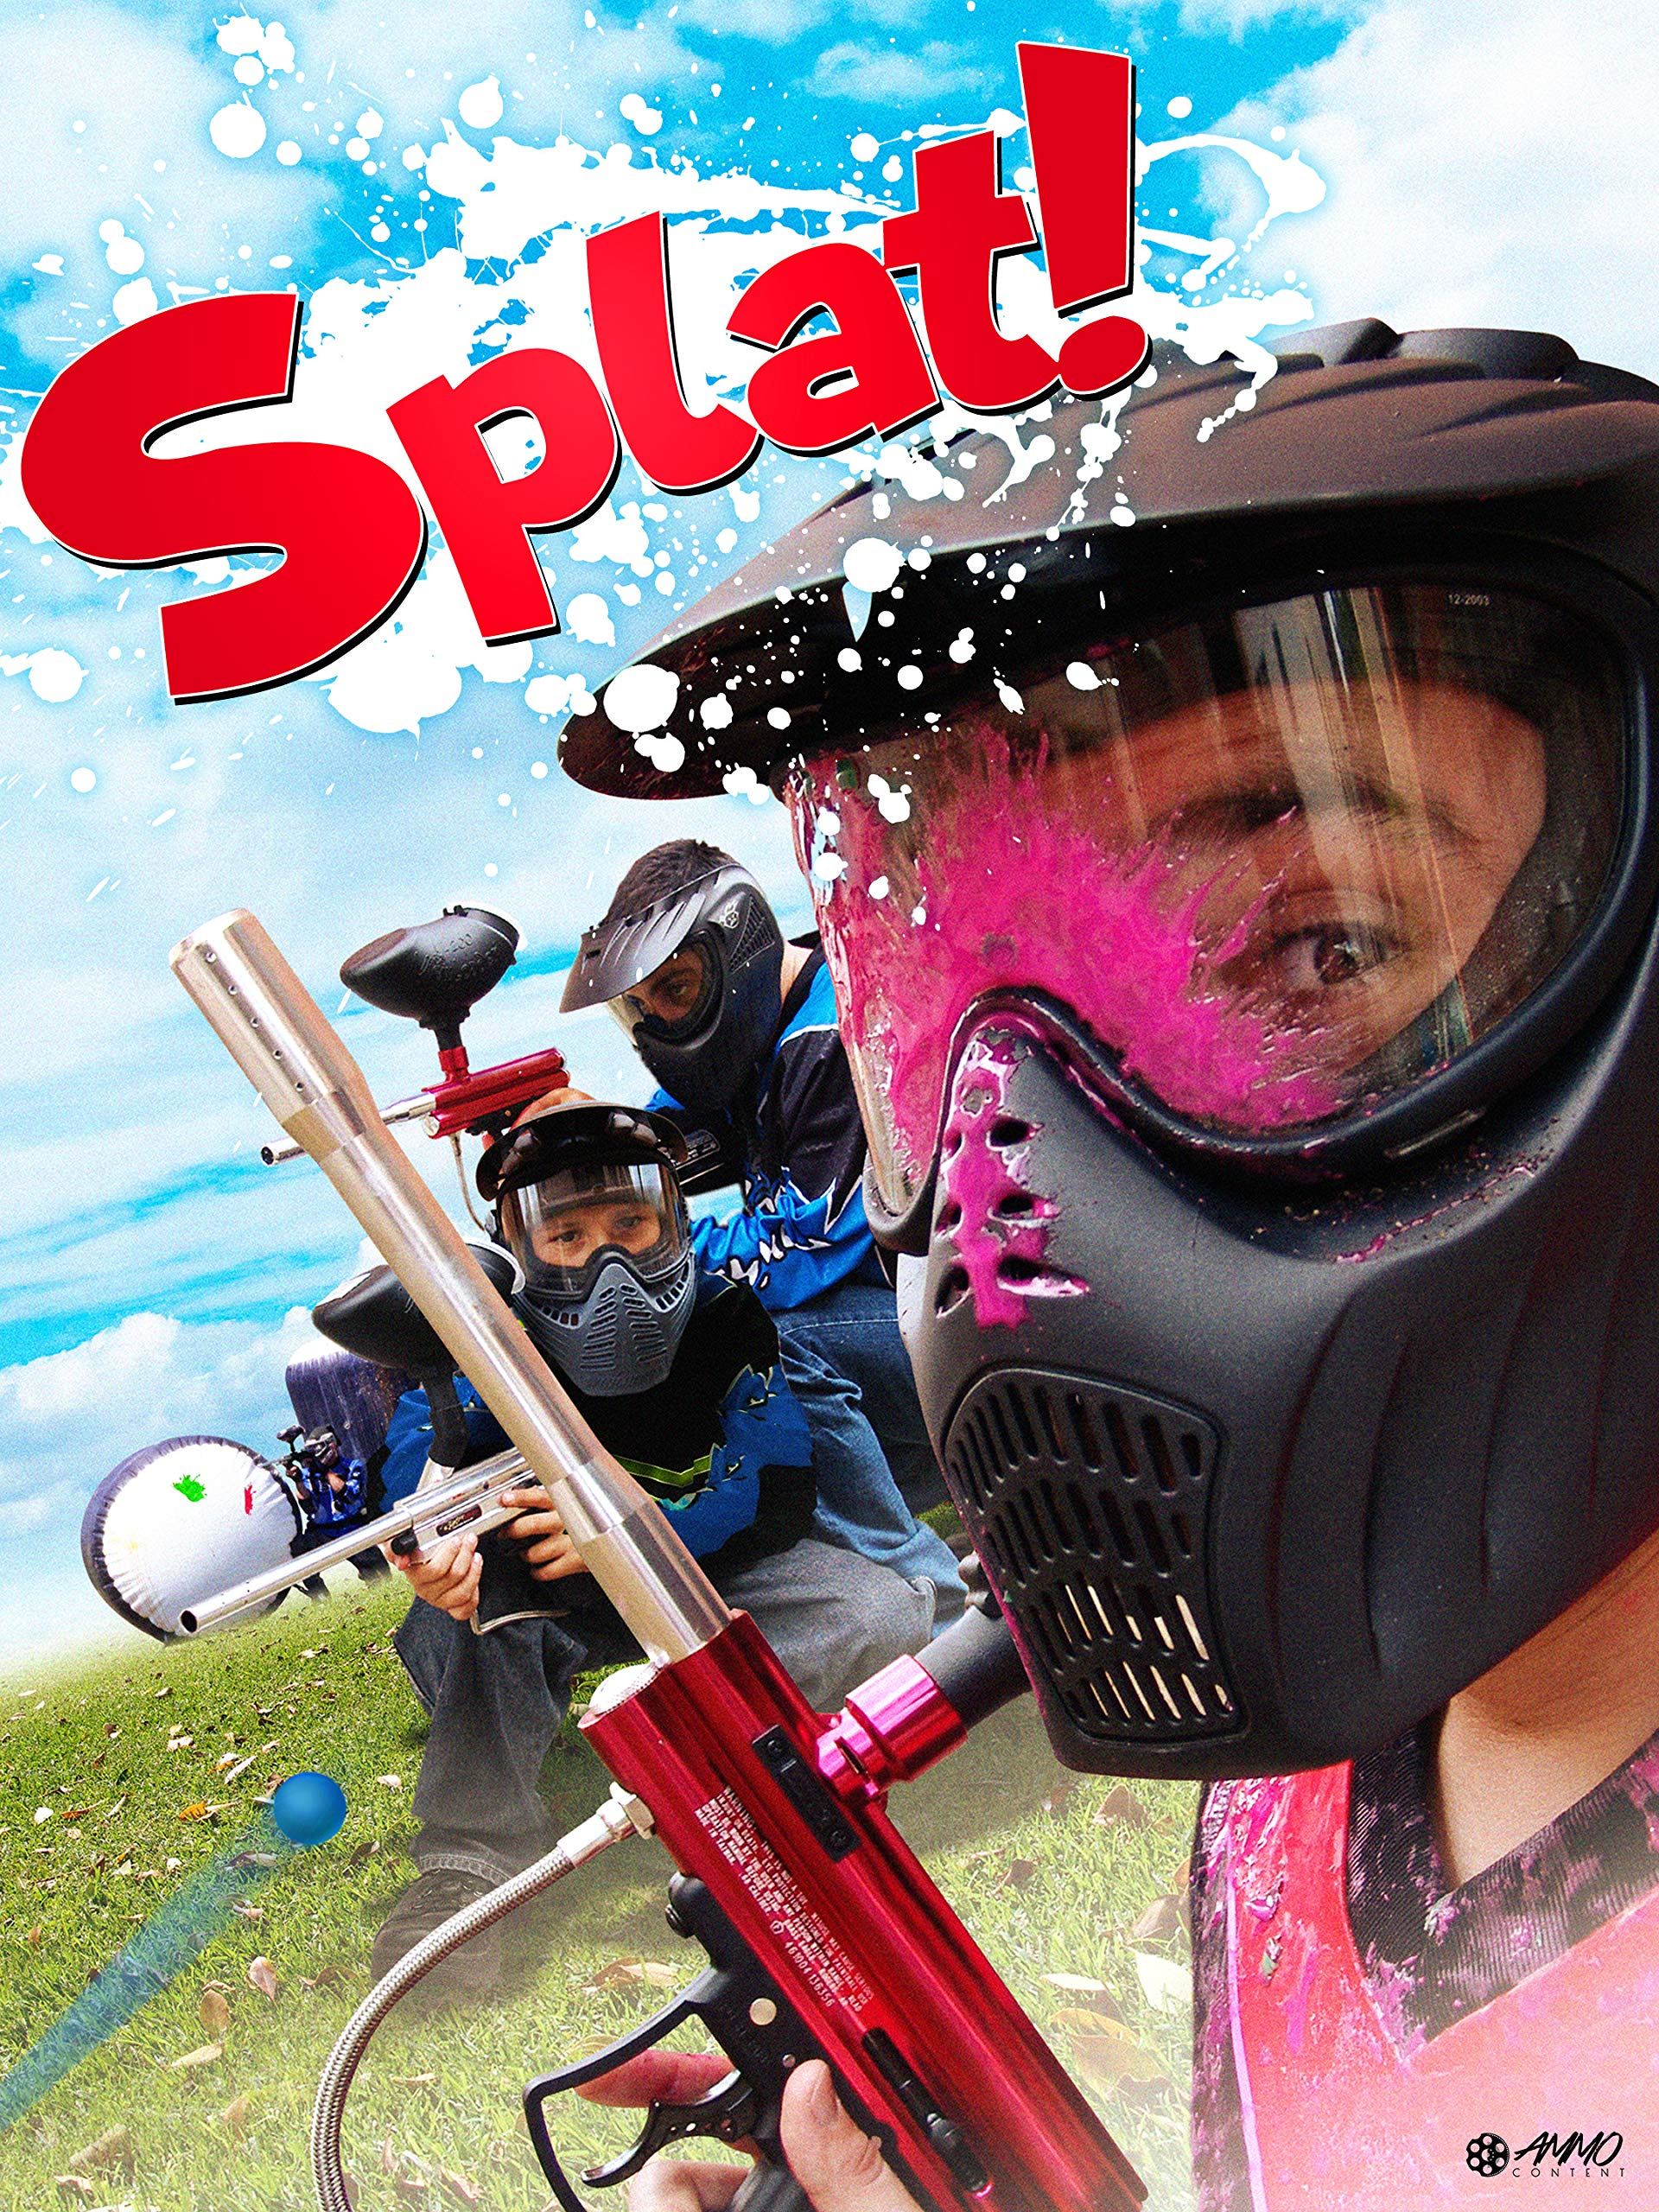 Splat (In Your Face)